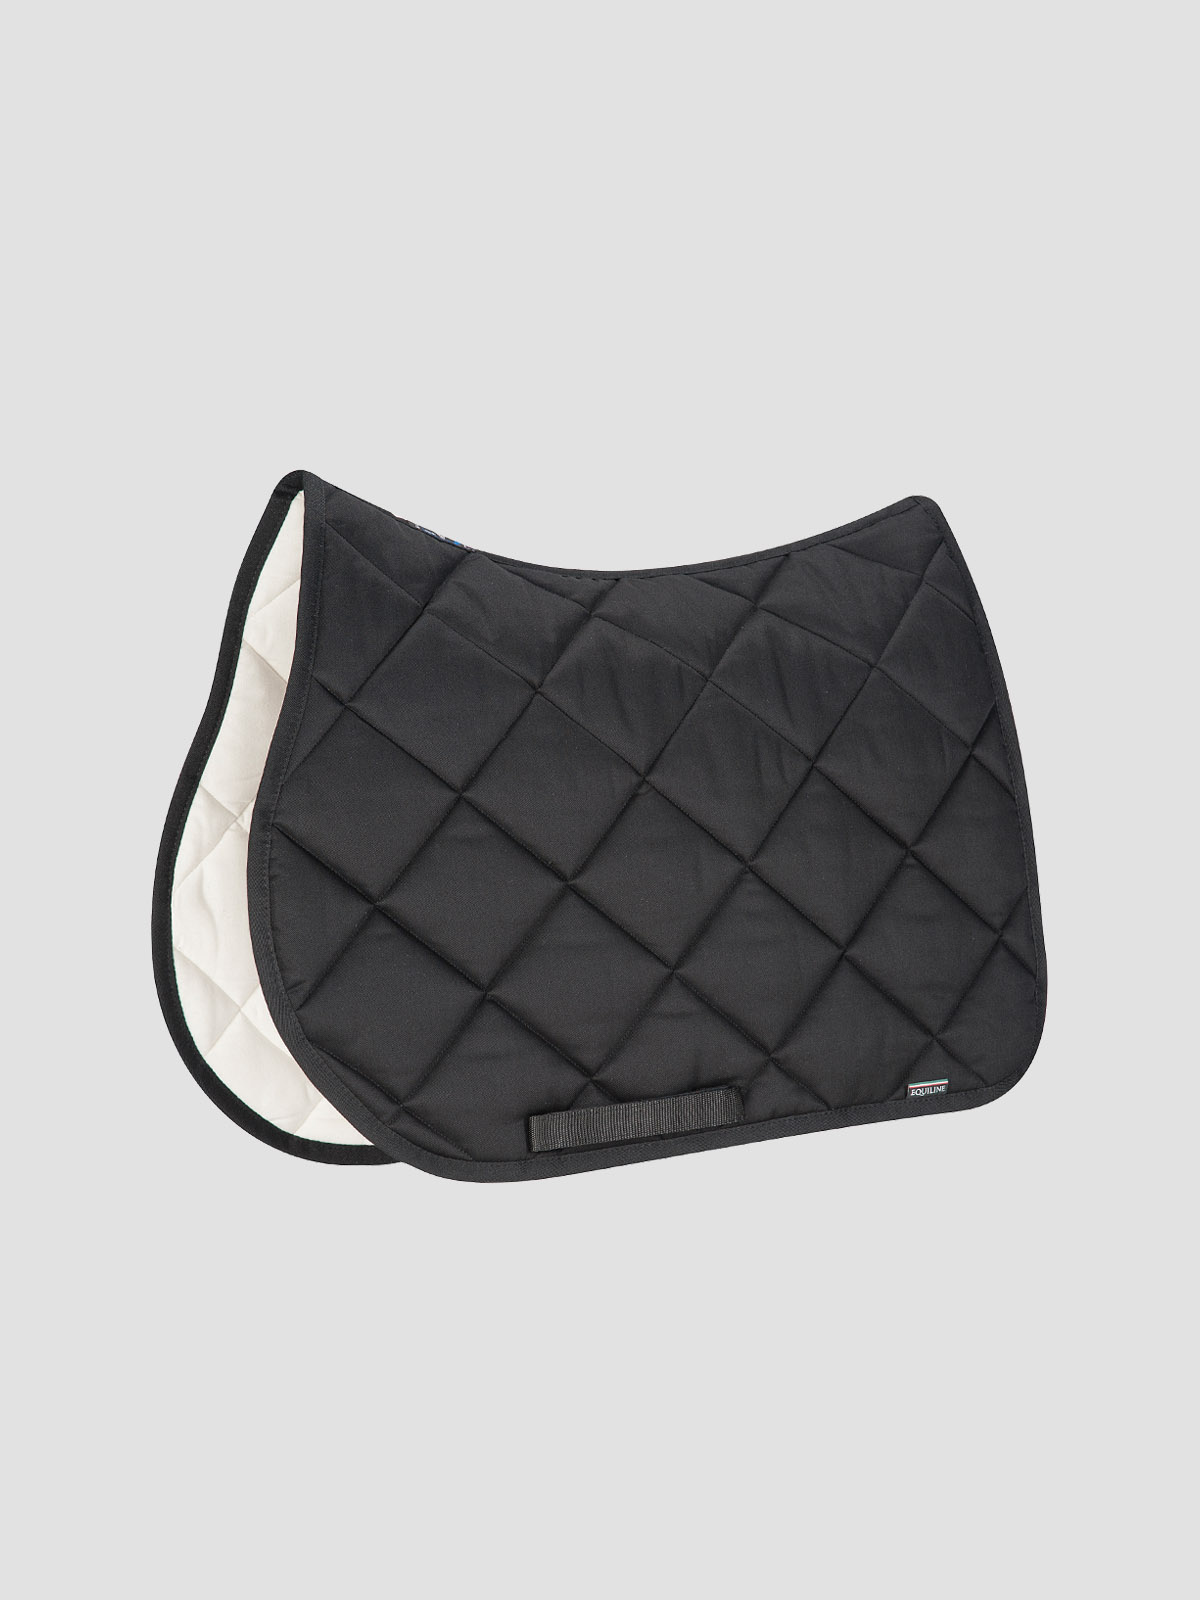 ROMBO - Rombo Saddle Pad 6